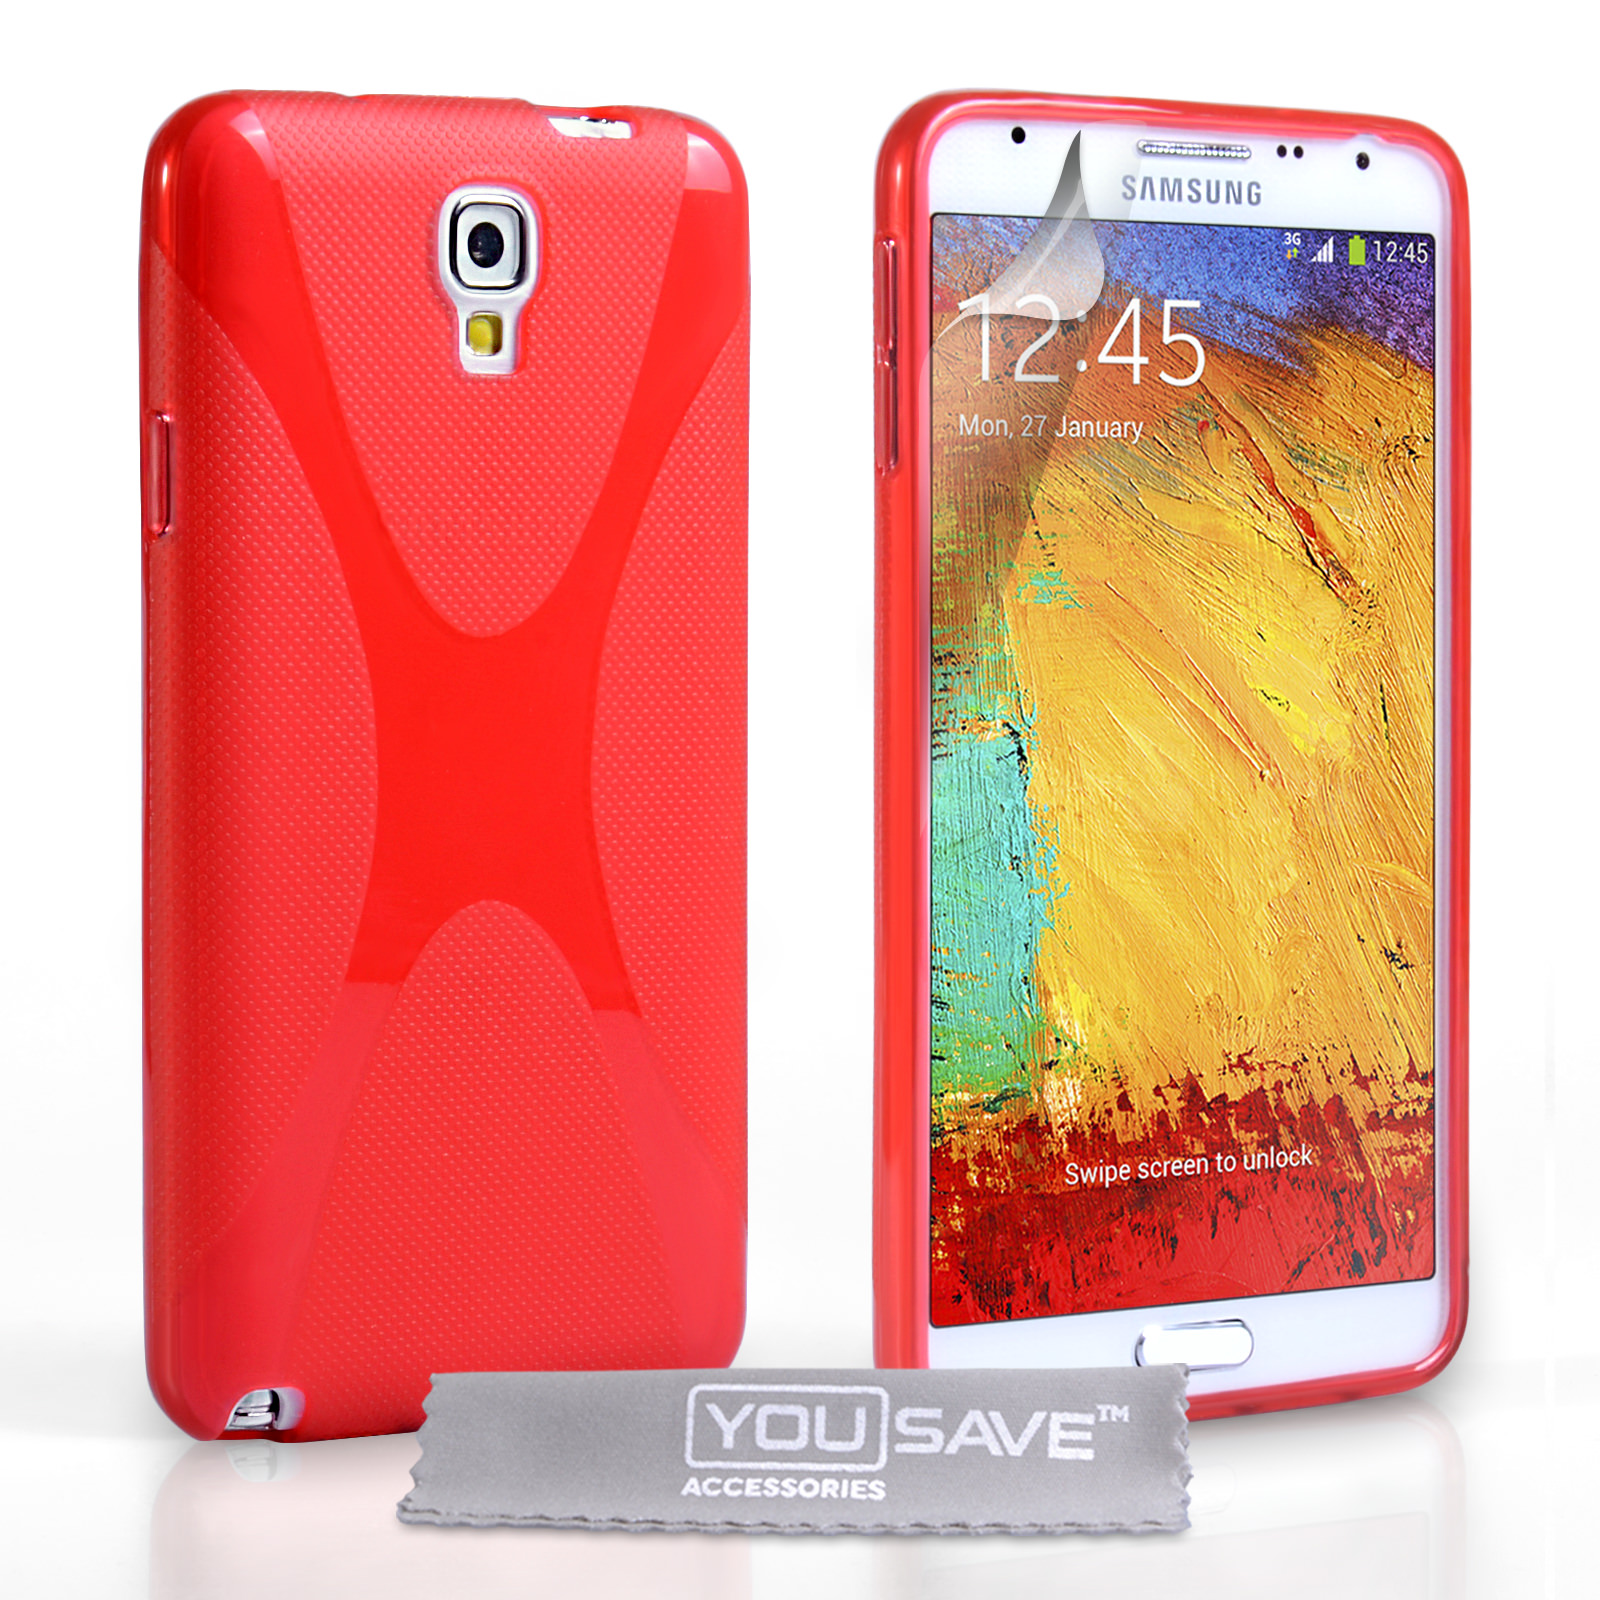 YouSave Samsung Galaxy Note 3 Neo Silicone Gel X-Line Case - Red